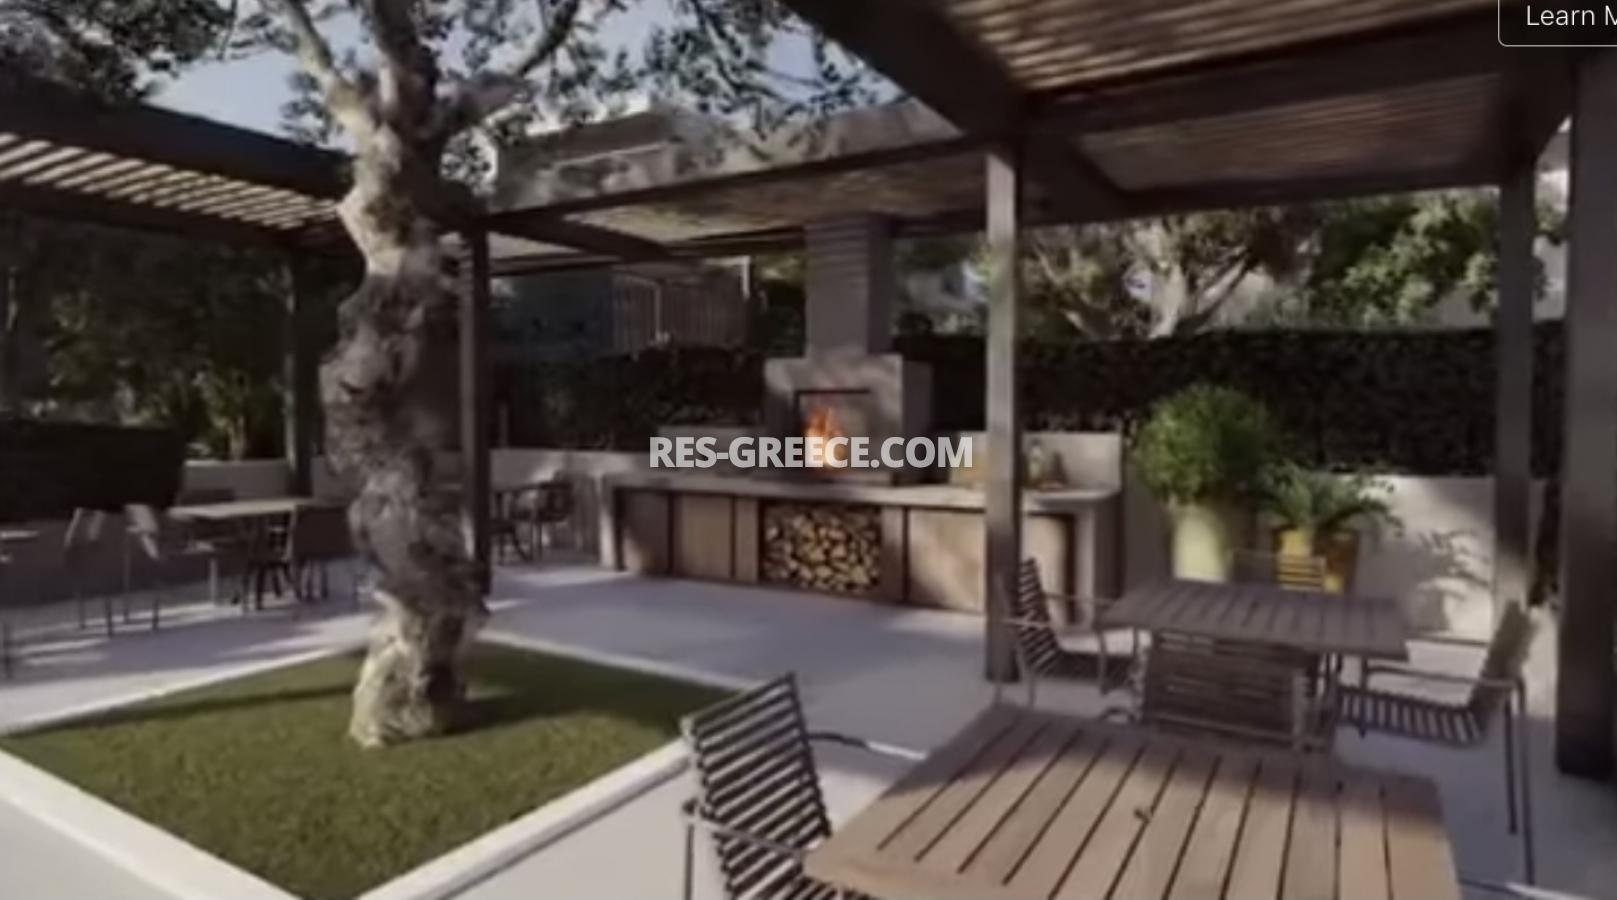 Anasa apartments, Halkidiki-Sithonia, Greece - apartments in a new complex with pool - Photo 7